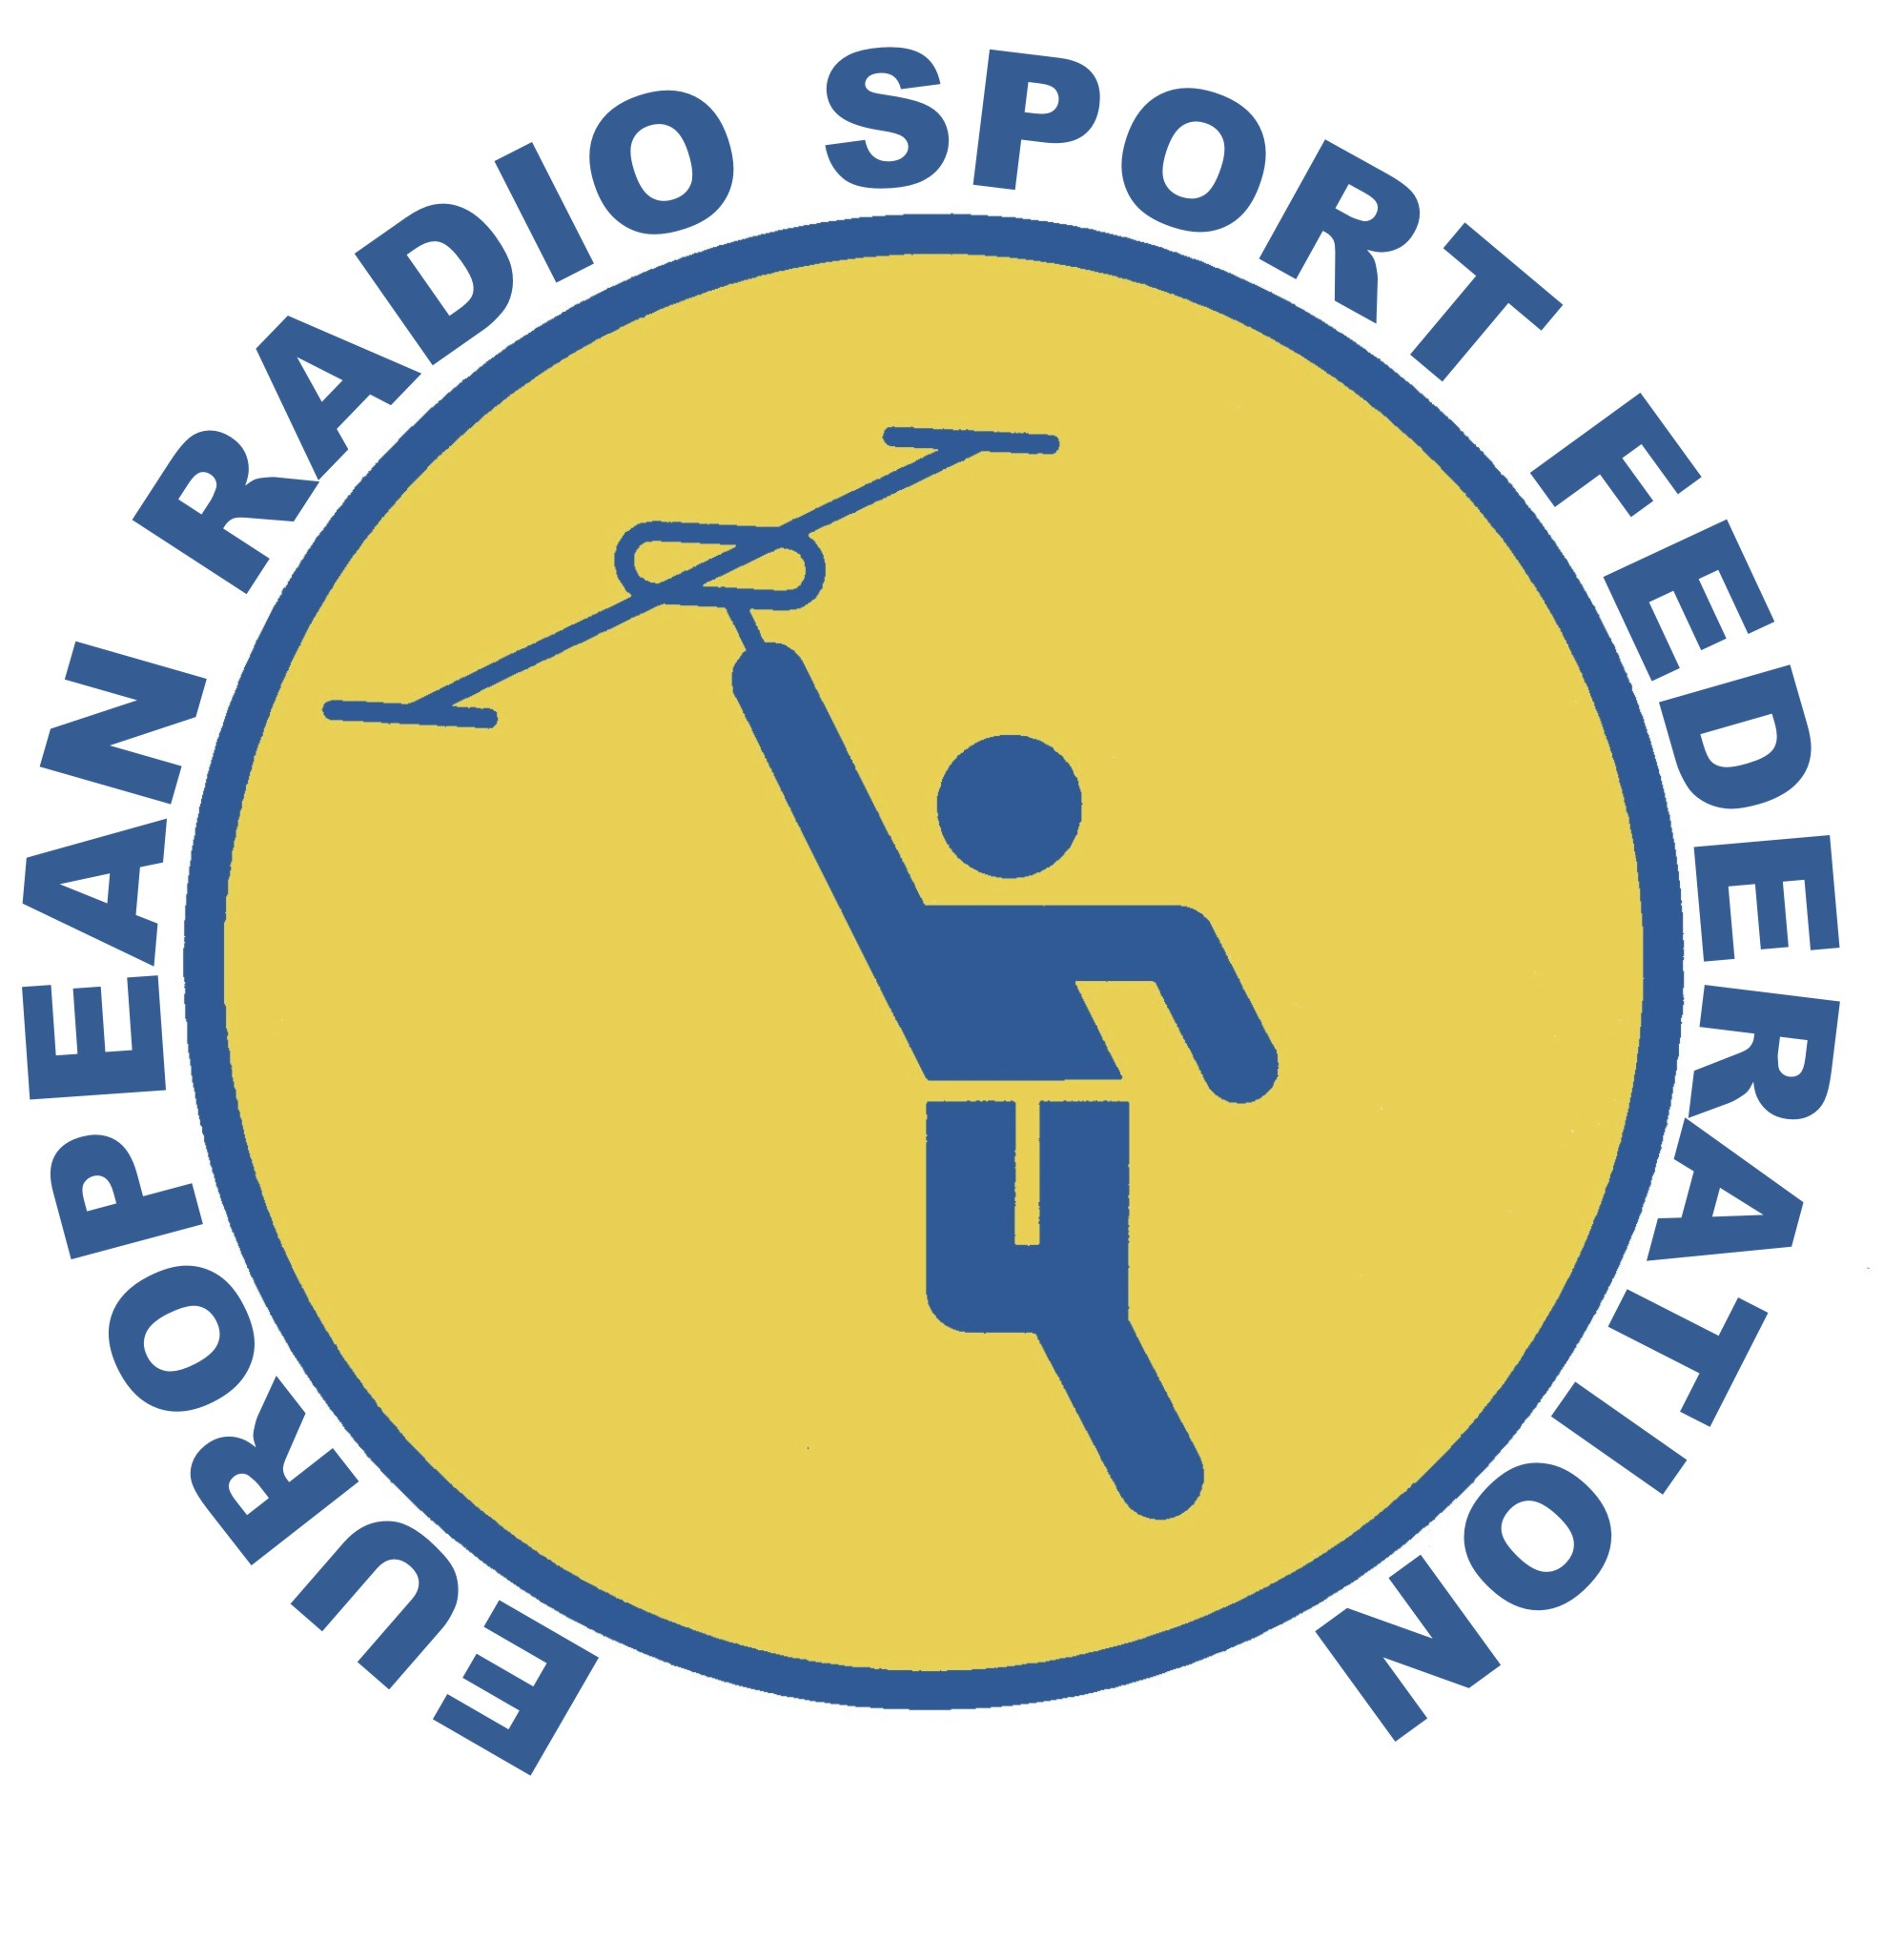 European radio sport federation